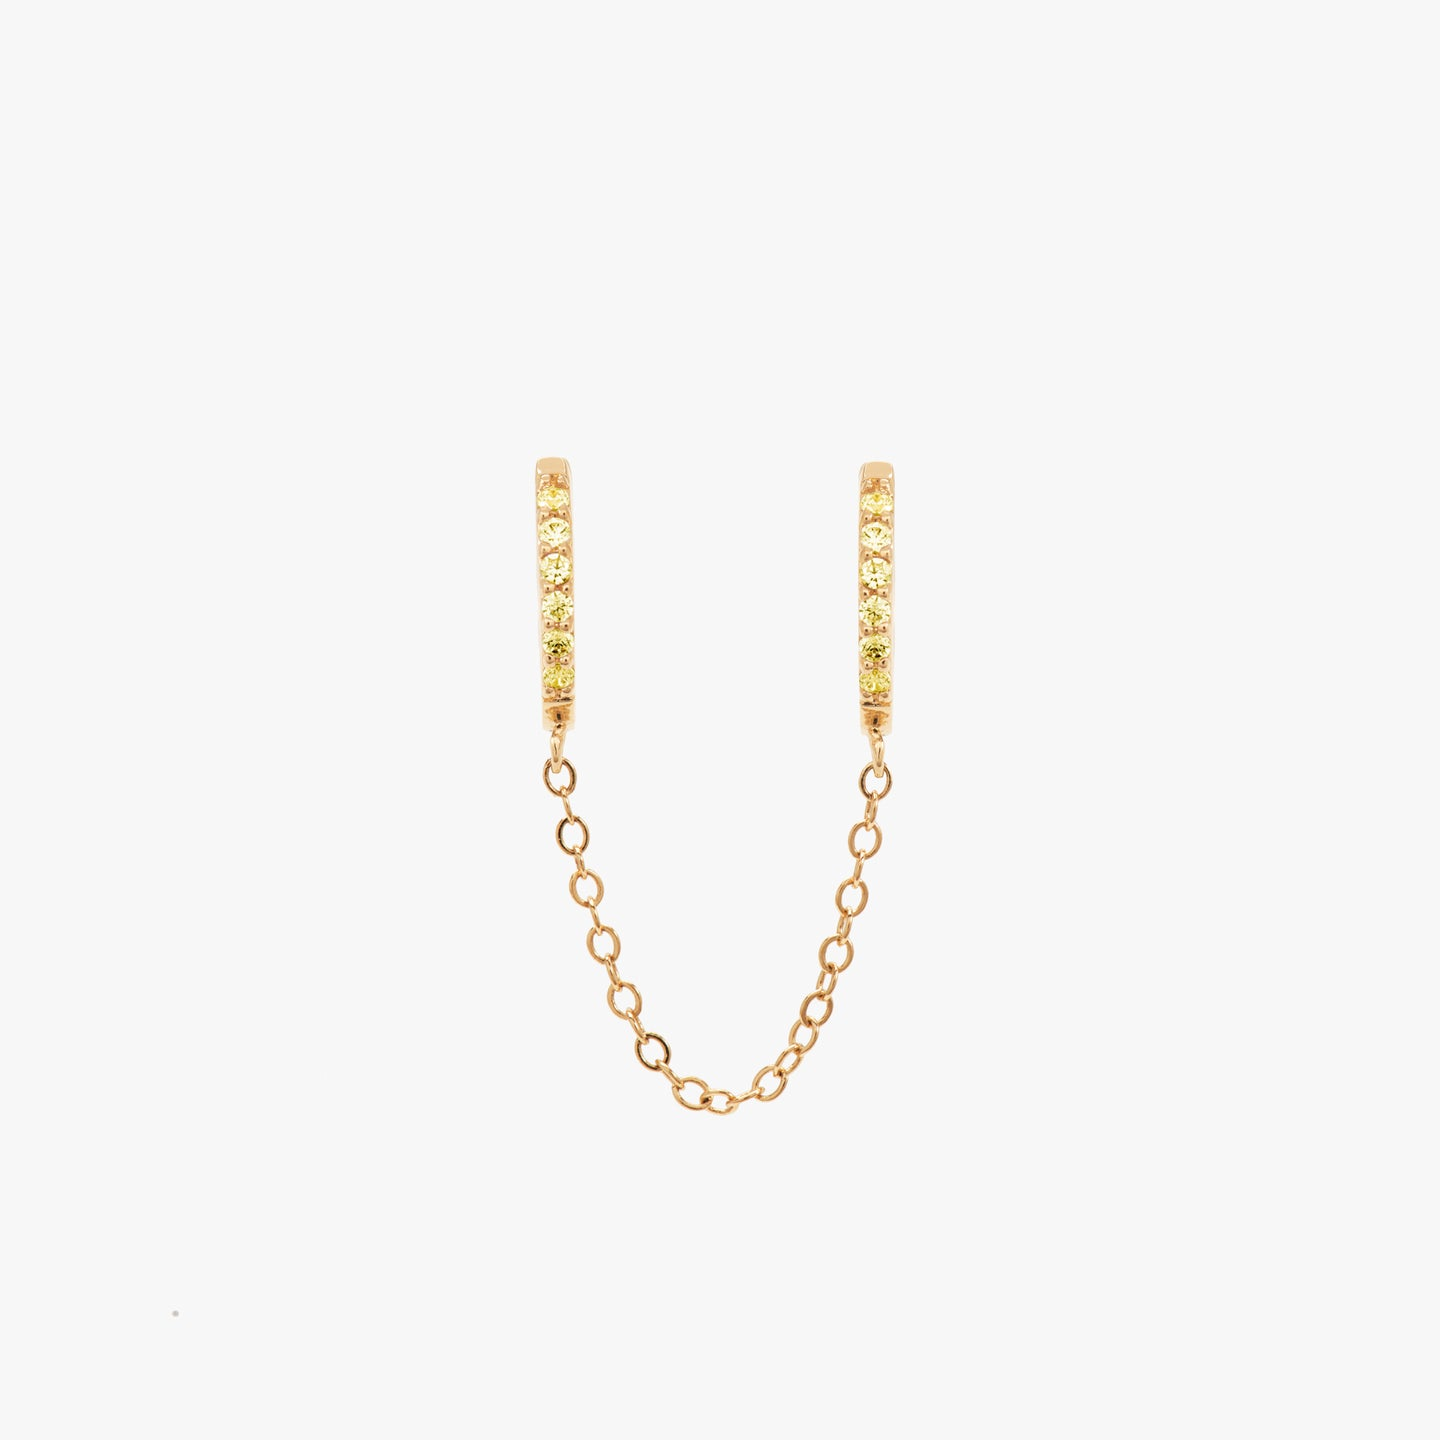 Two separate yellow CZ front huggies attached by a gold chain. color:gold/yellow